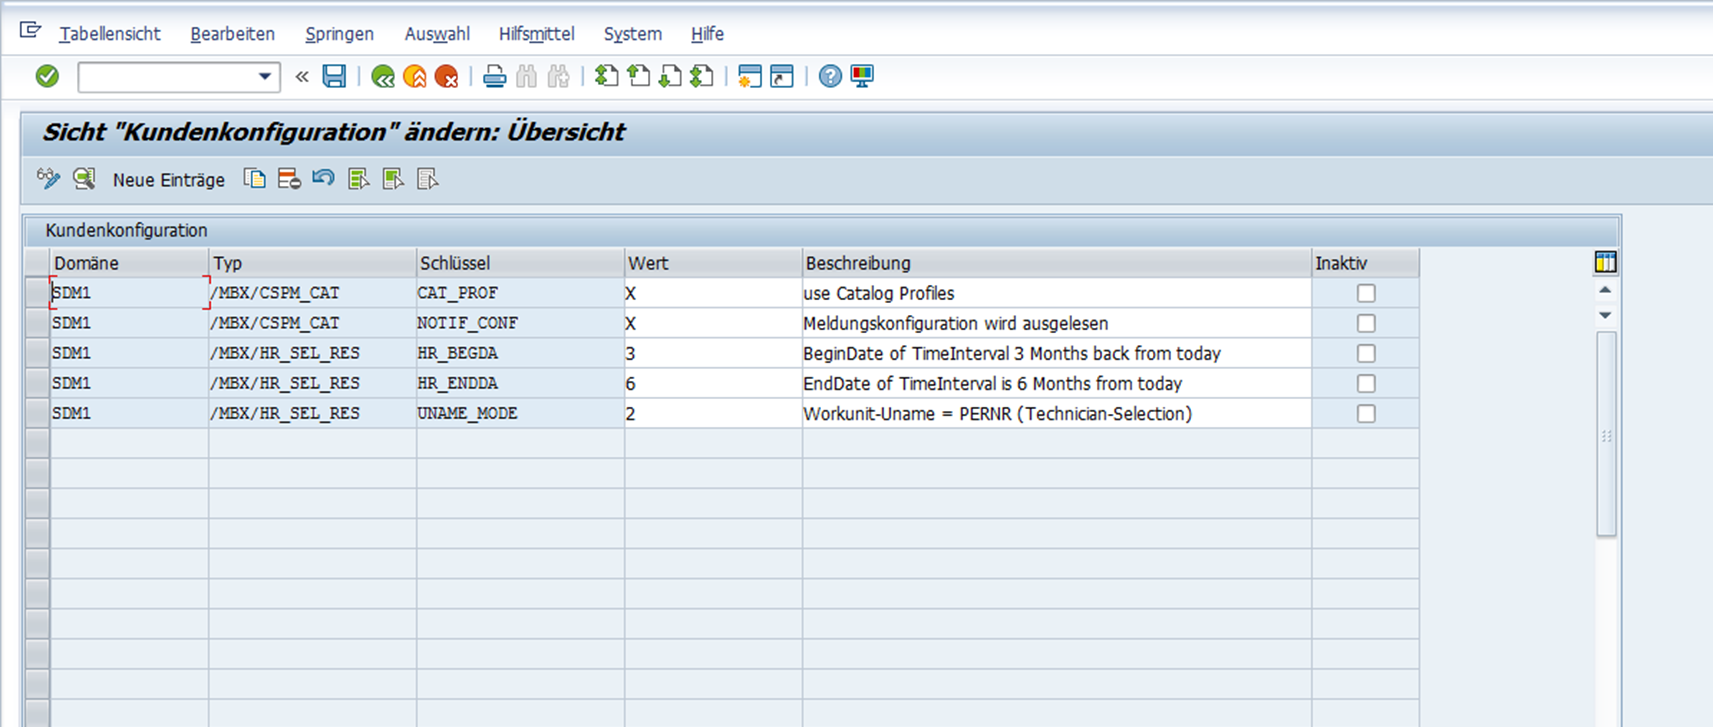 Extensibility of the certified SAP interface